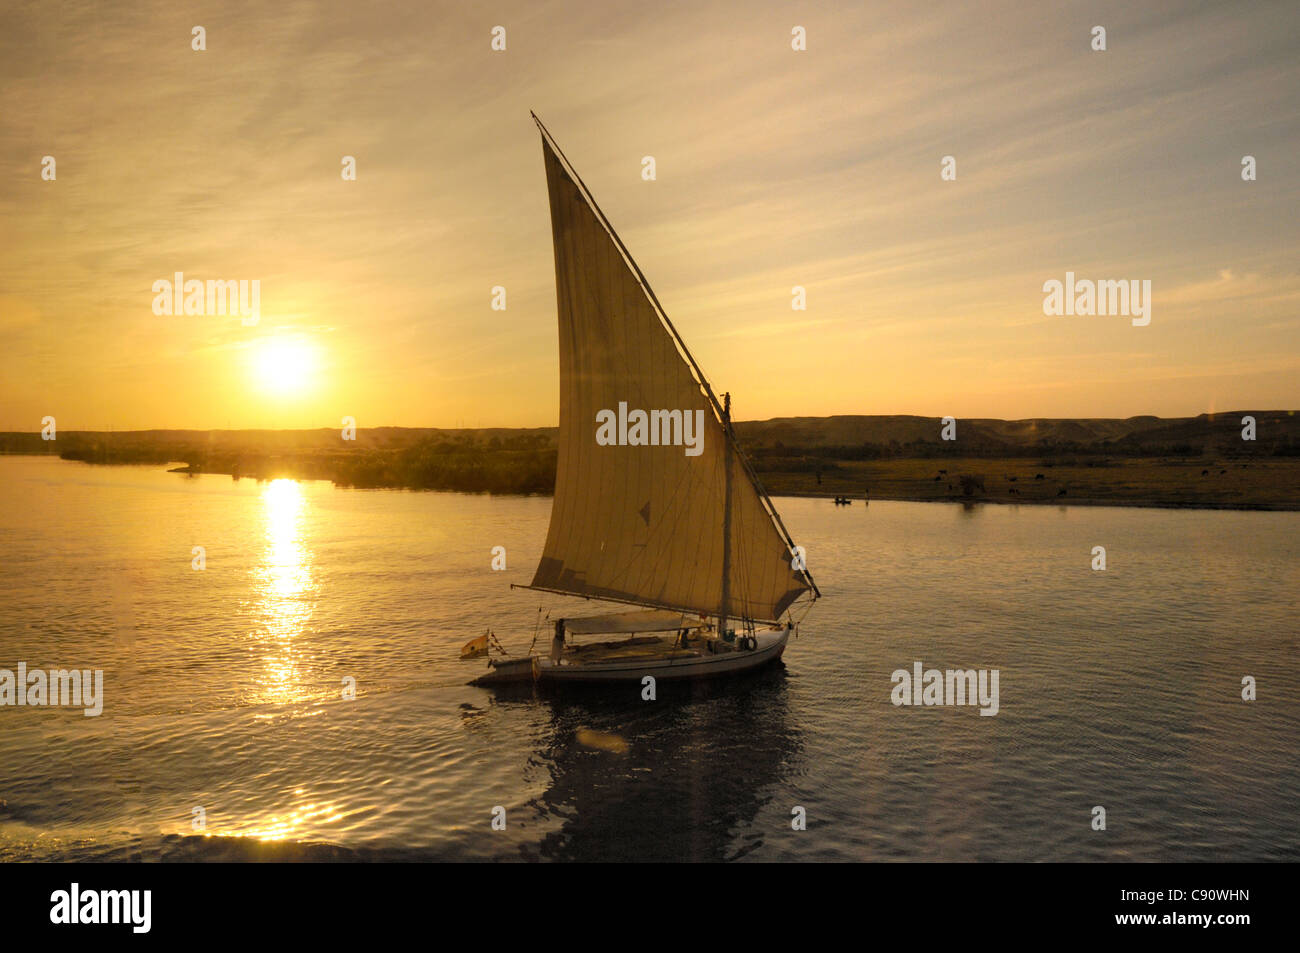 Feluccas or traditional boats have triangular sails and often offer tourist boat trips at the end of a hot day to - Stock Image